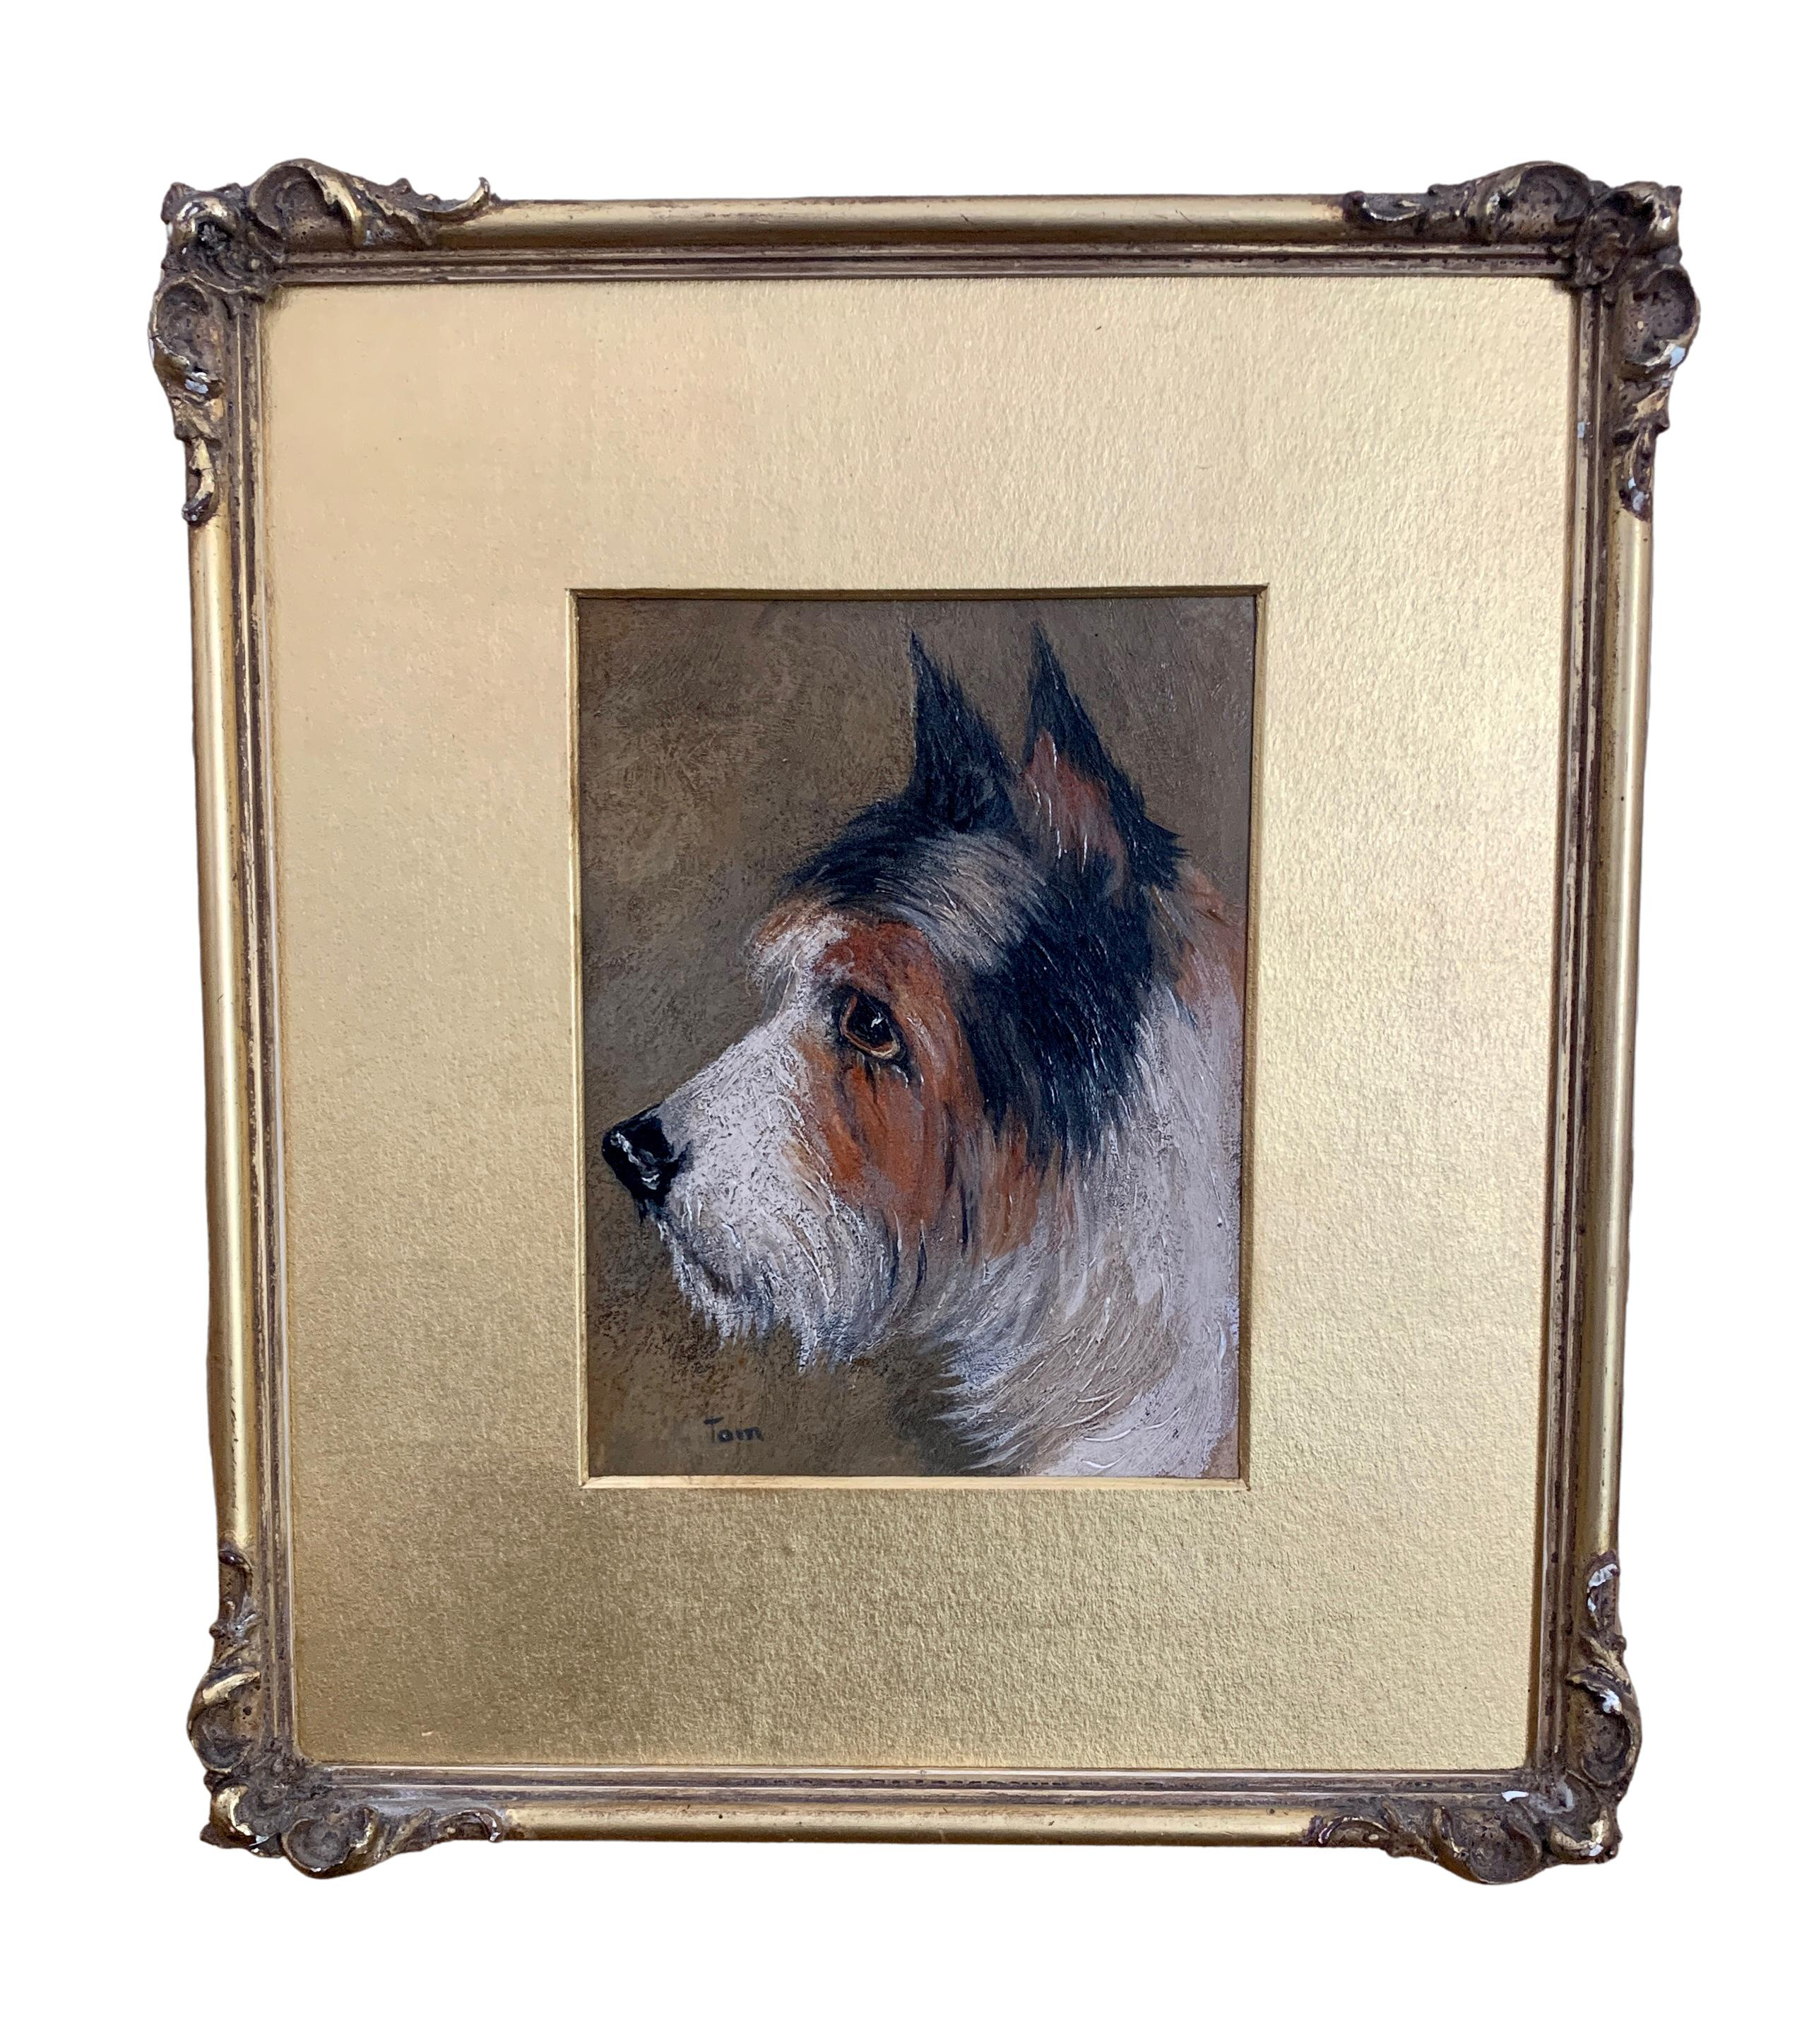 Victorian English portrait of a Terrier dog head